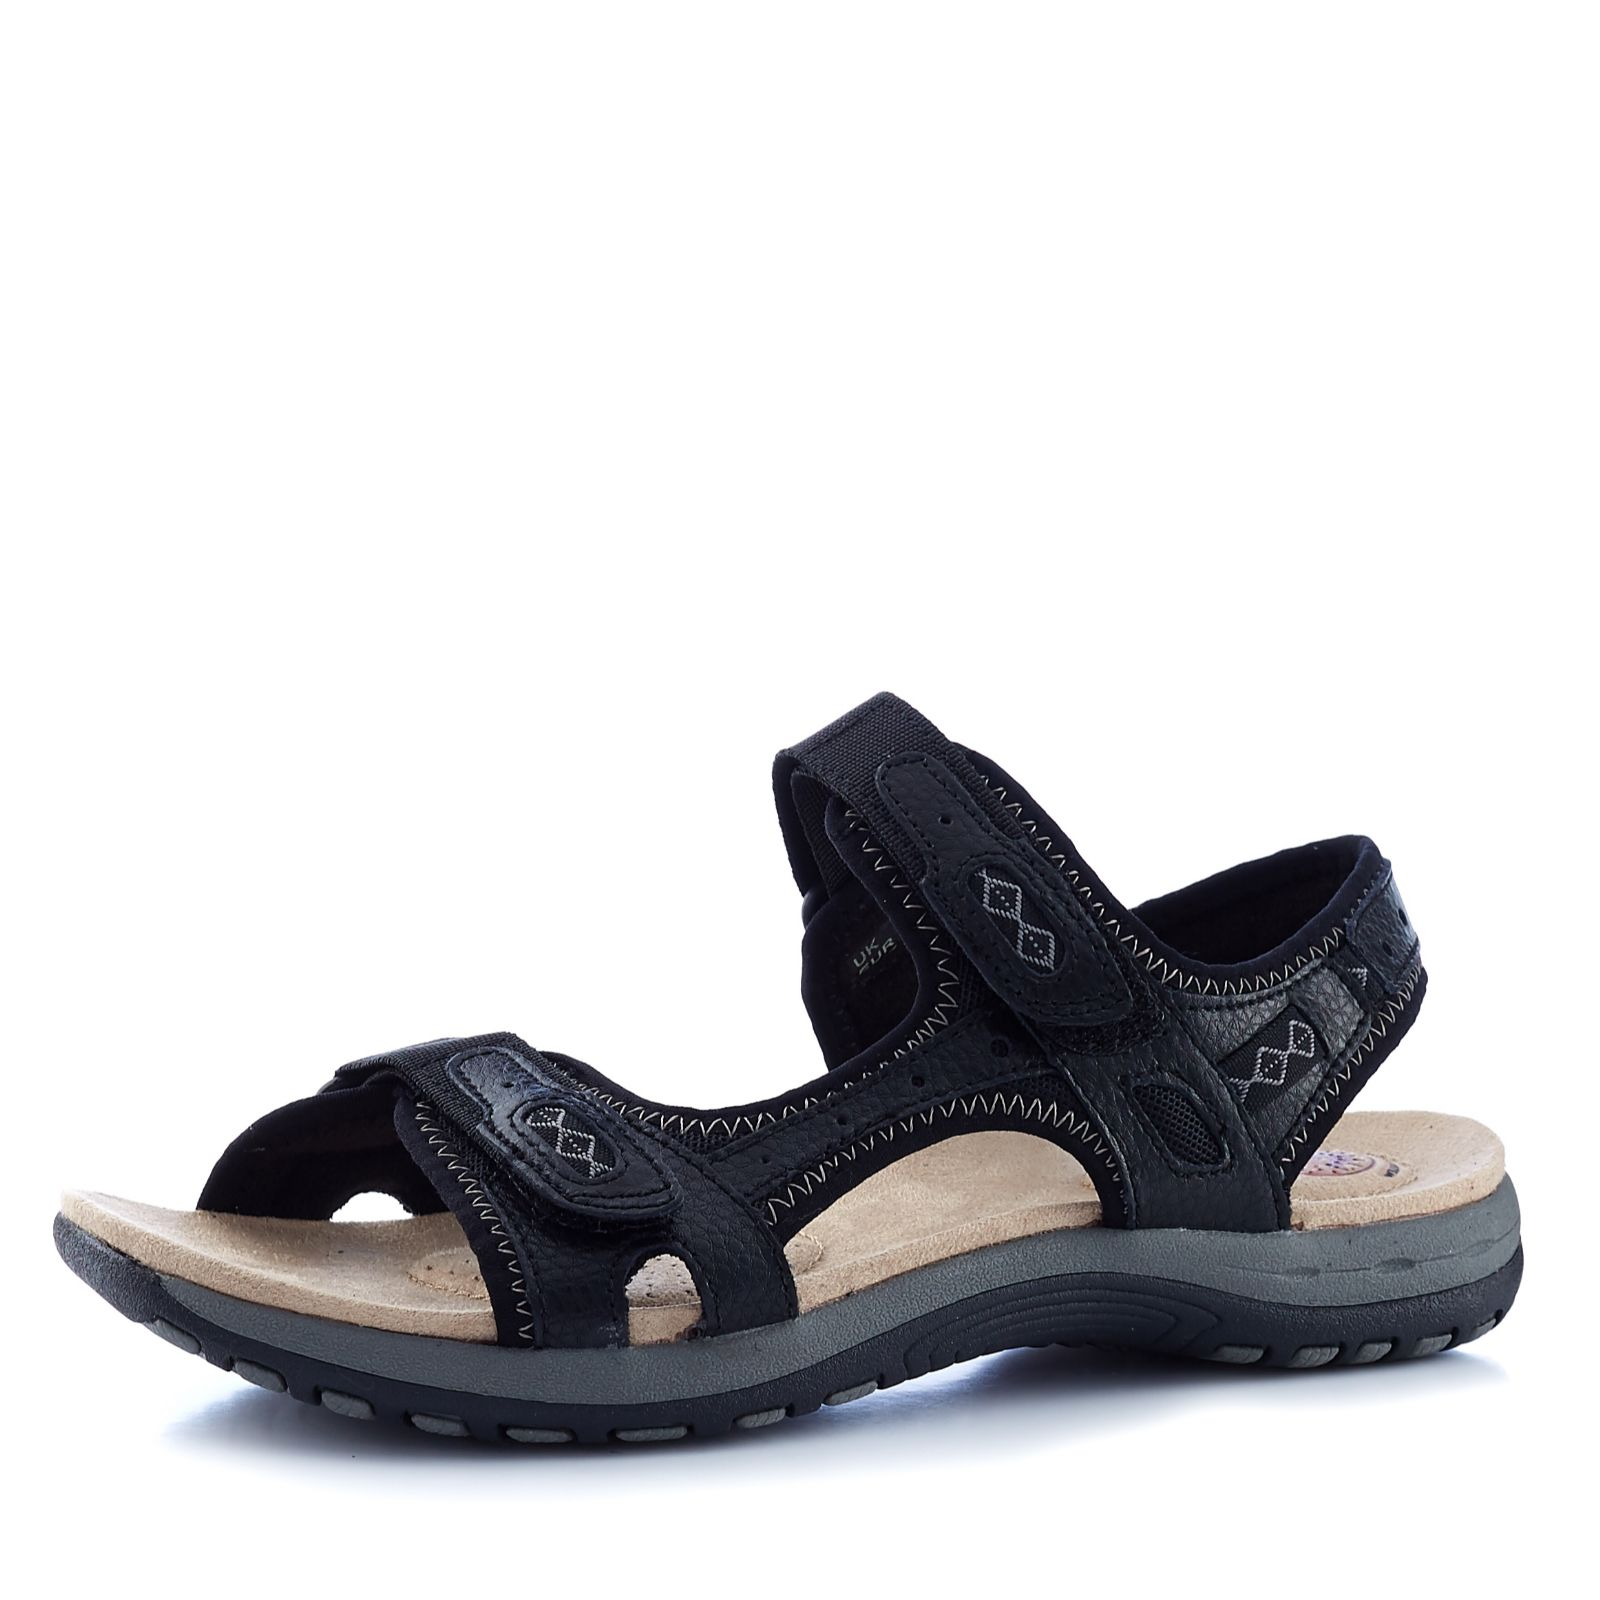 99a618735b8 Earth Spirit Frisco Double Strap Casual Sandal - QVC UK